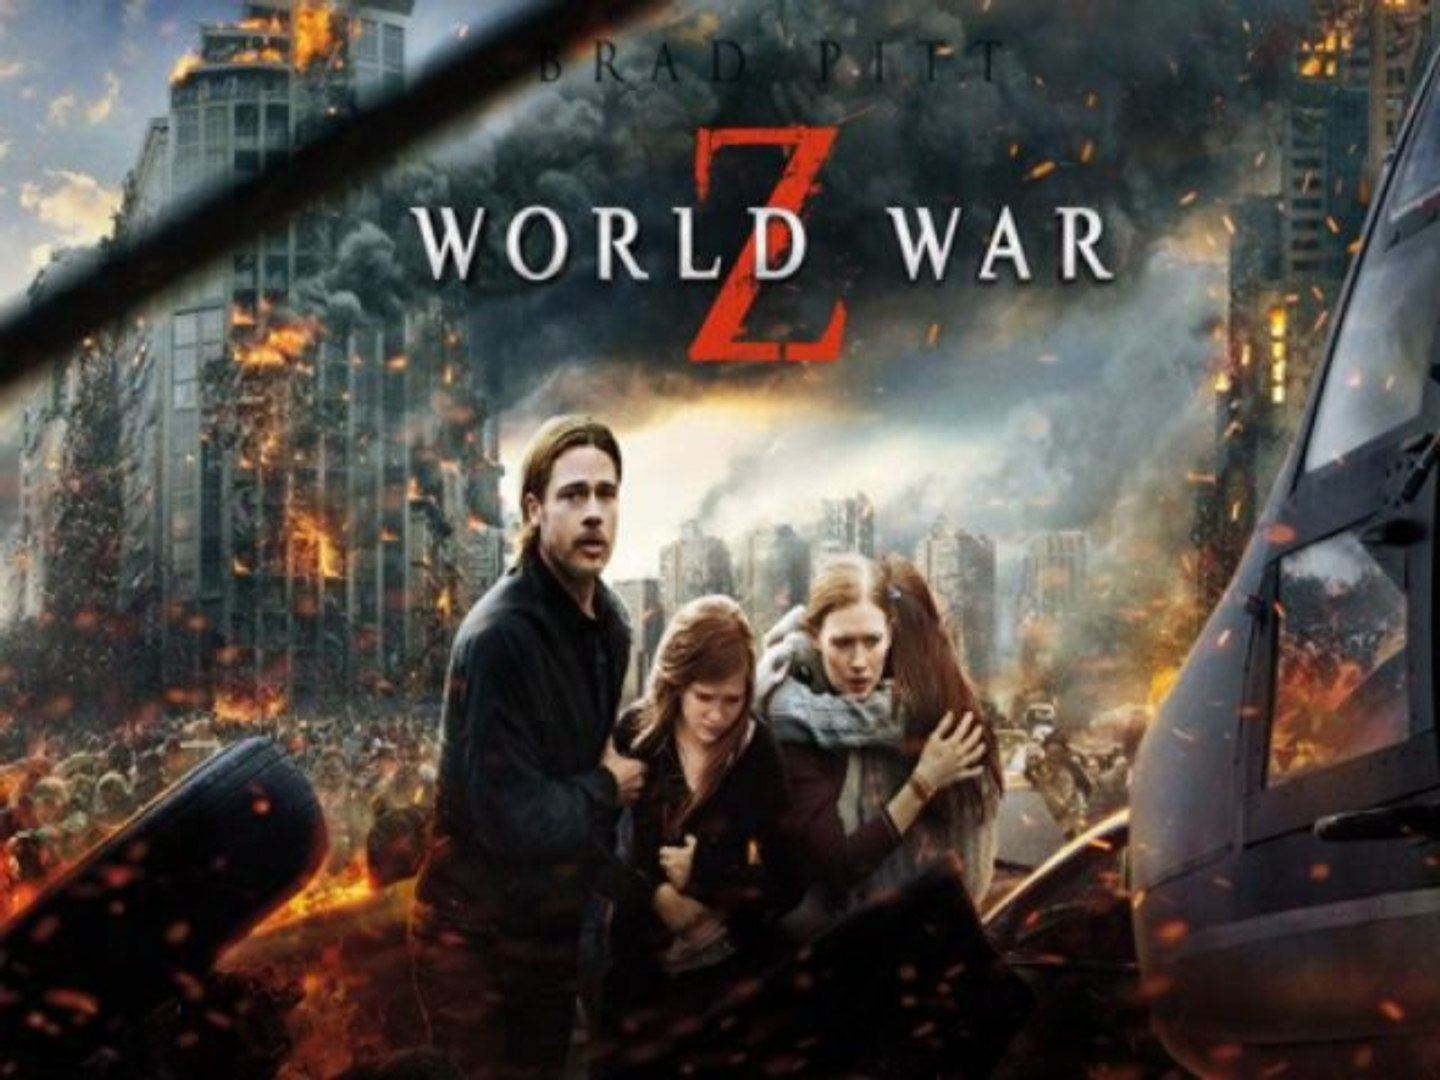 Complete Movie ONLINE World War Z  ++ FREE Movie++ with High Definition 720p [streaming movie new]